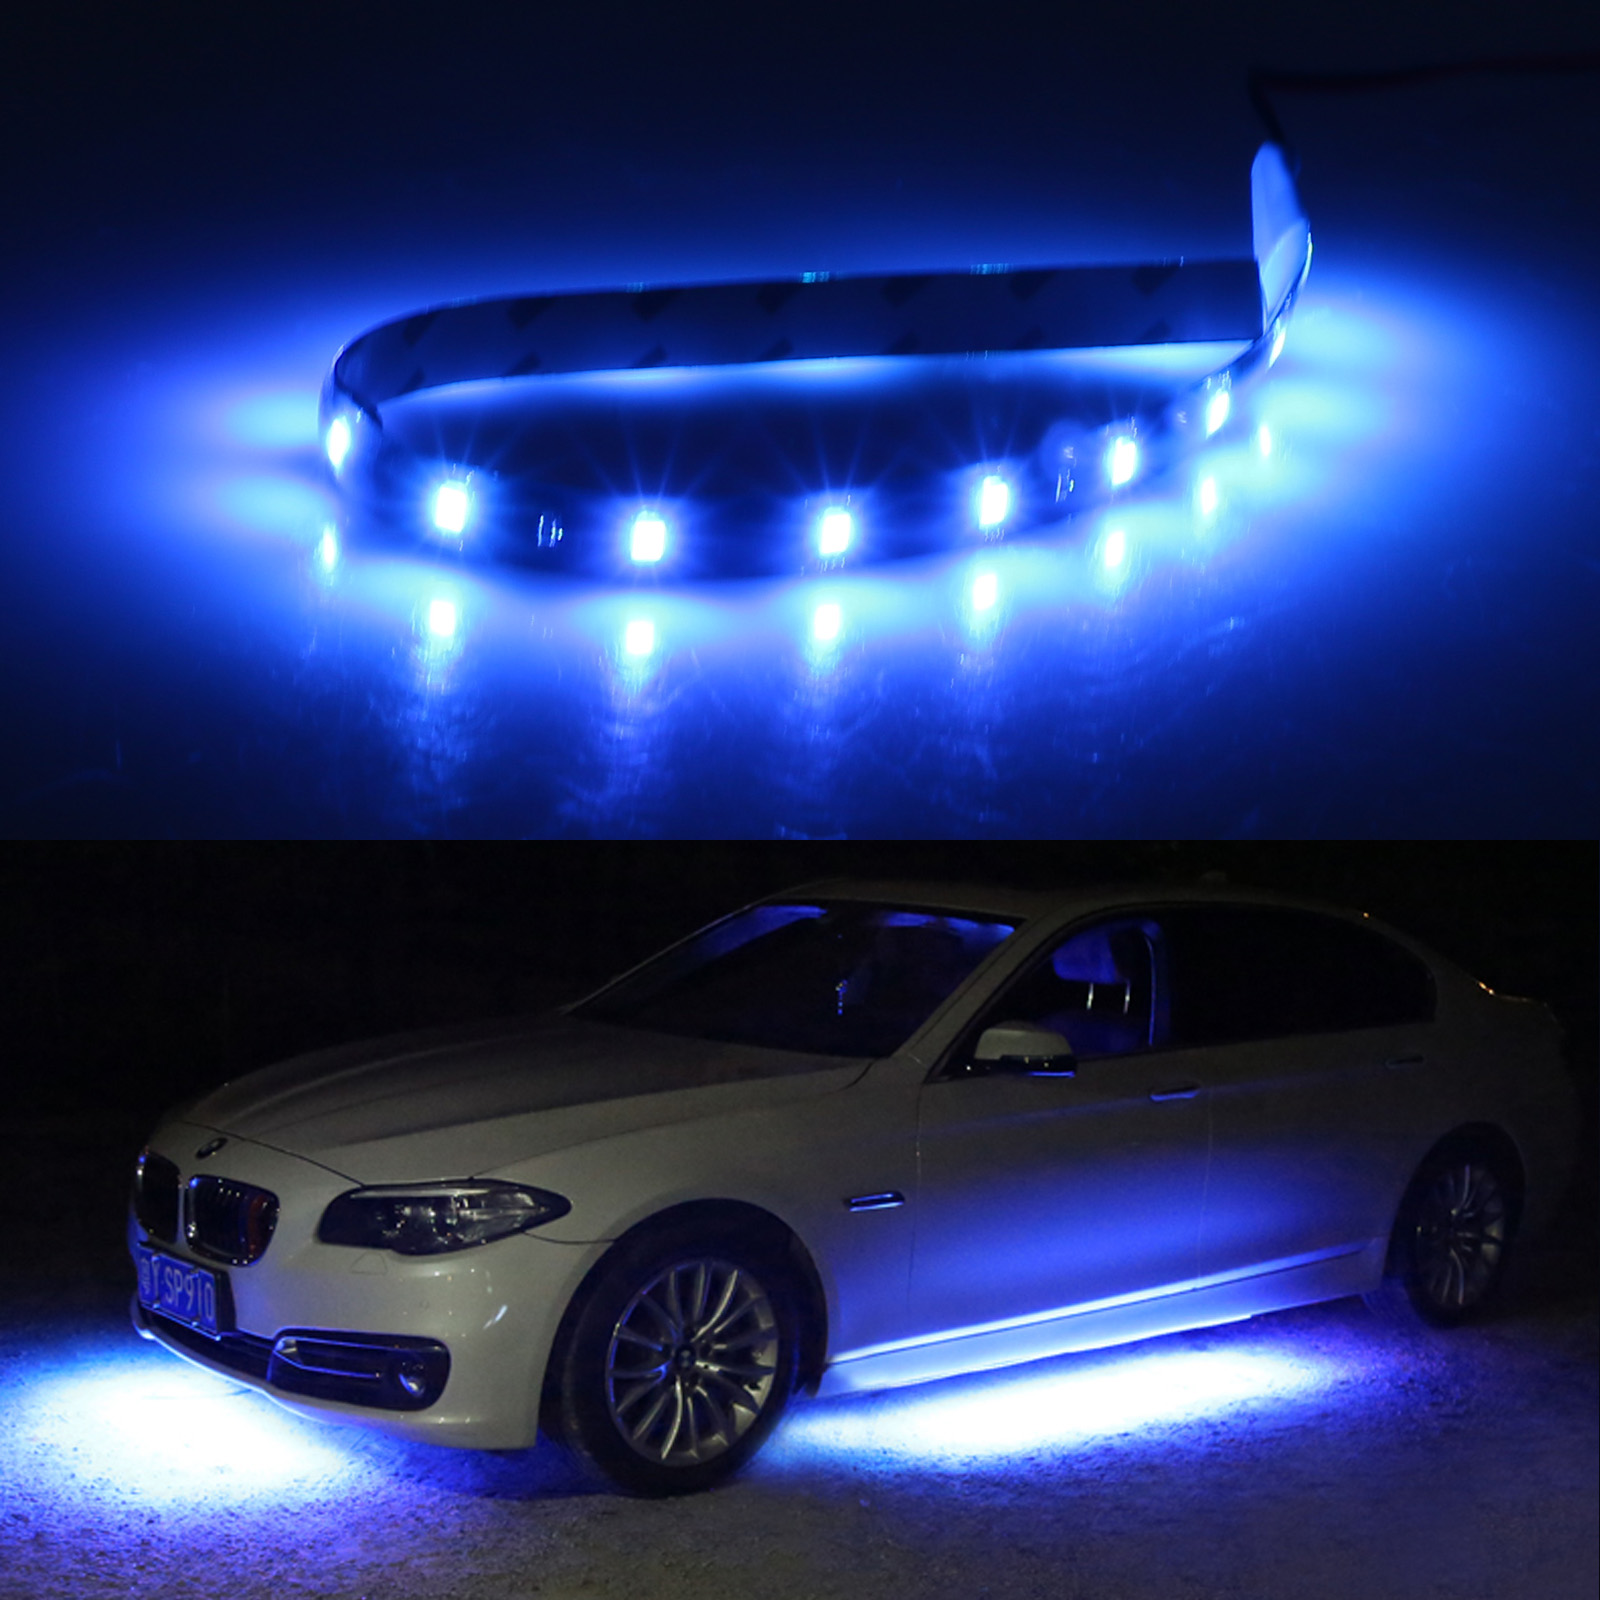 6-12-Pack-Waterproof-Flexible-DC12V-LED-Strip-Underbody-Light-for-Car-Motorcycle thumbnail 13